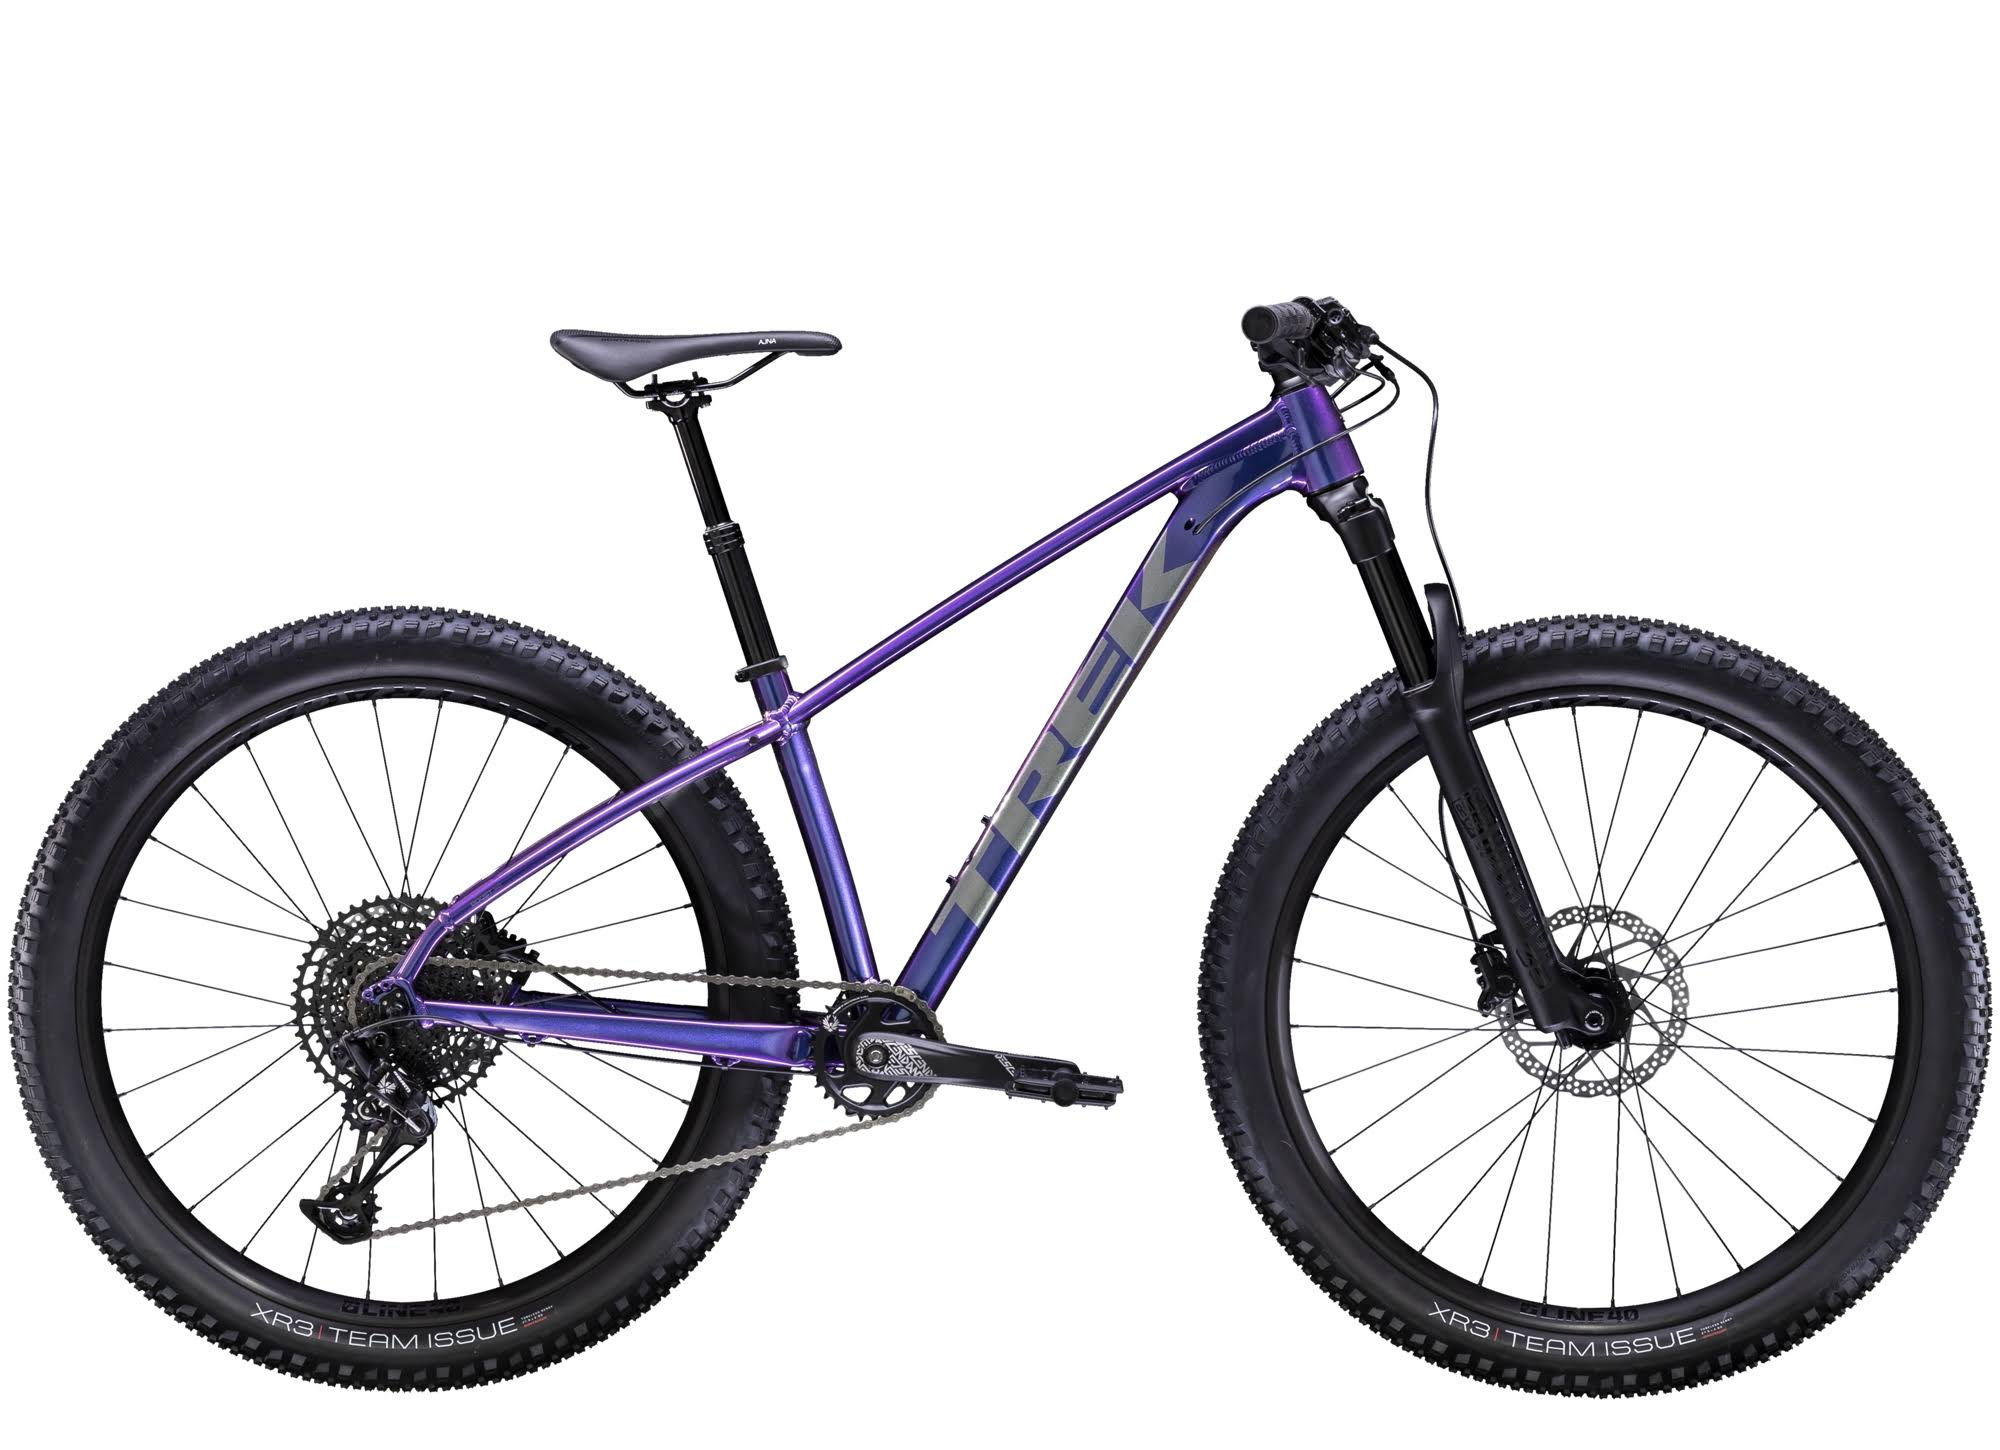 Trek Women's Roscoe 8 Hardtail Trail Bike - Purple Flip, Small